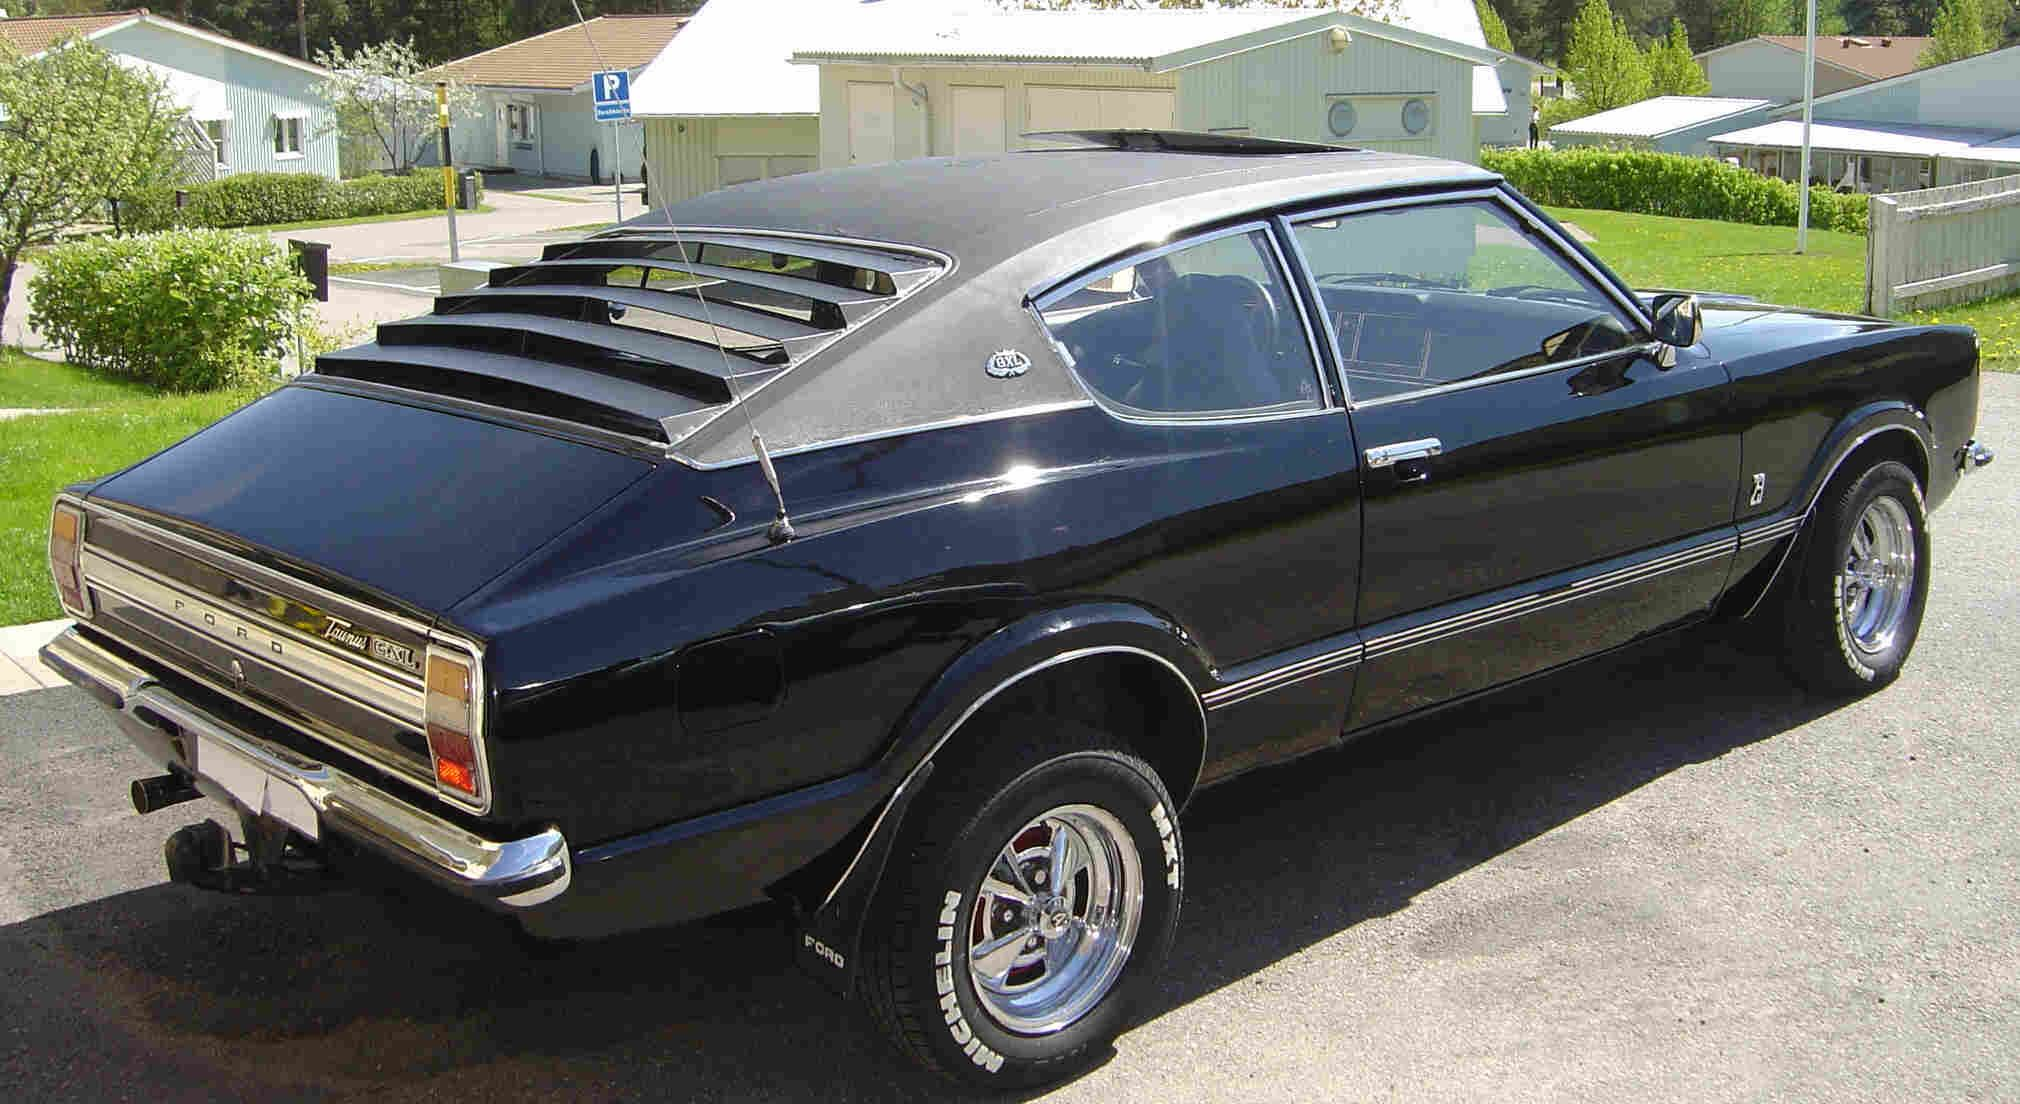 Ford Taunus Coupe 31 1970s